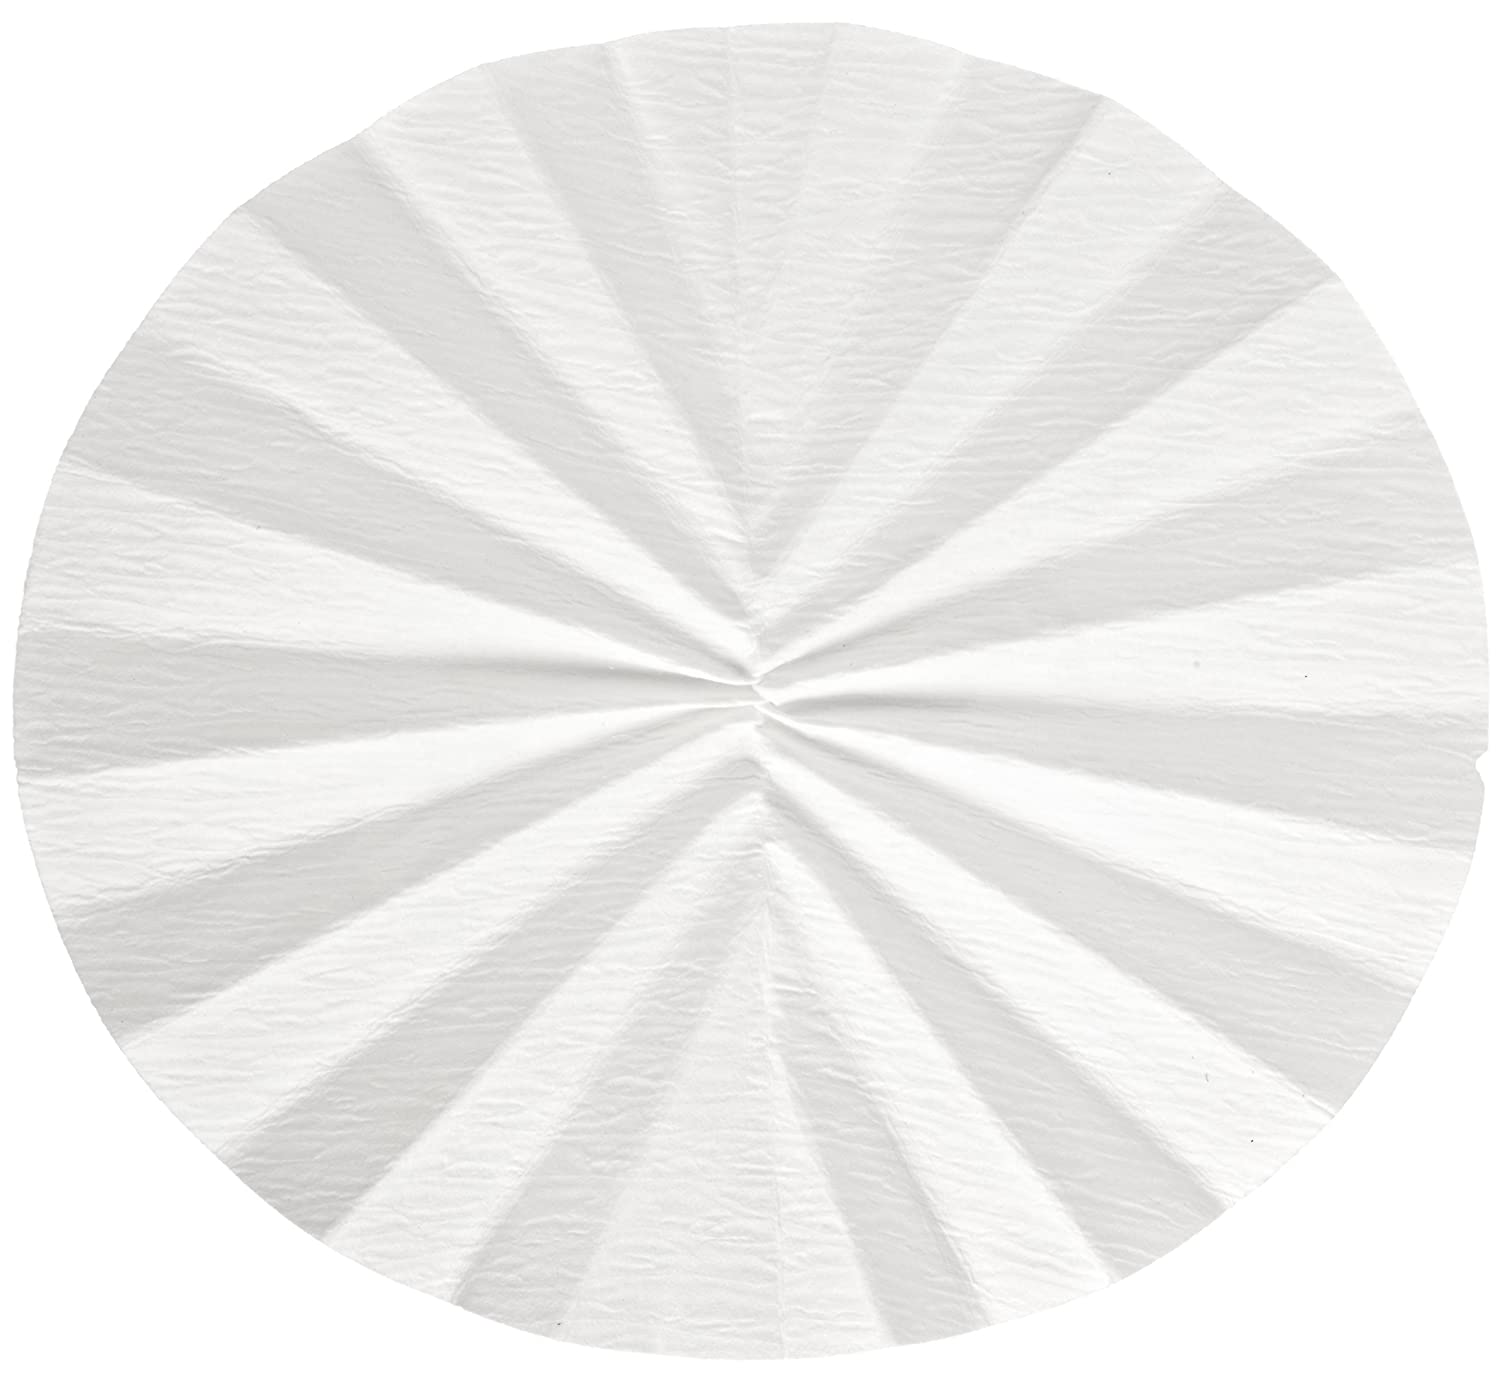 B00394F6US Whatman 10331556 Quantitative Folded Filter Paper, 15-19 Micron, Grade 520B-1/2, 500mm Diameter (Pack of 50) 81bGnLjbDiL._SL1500_